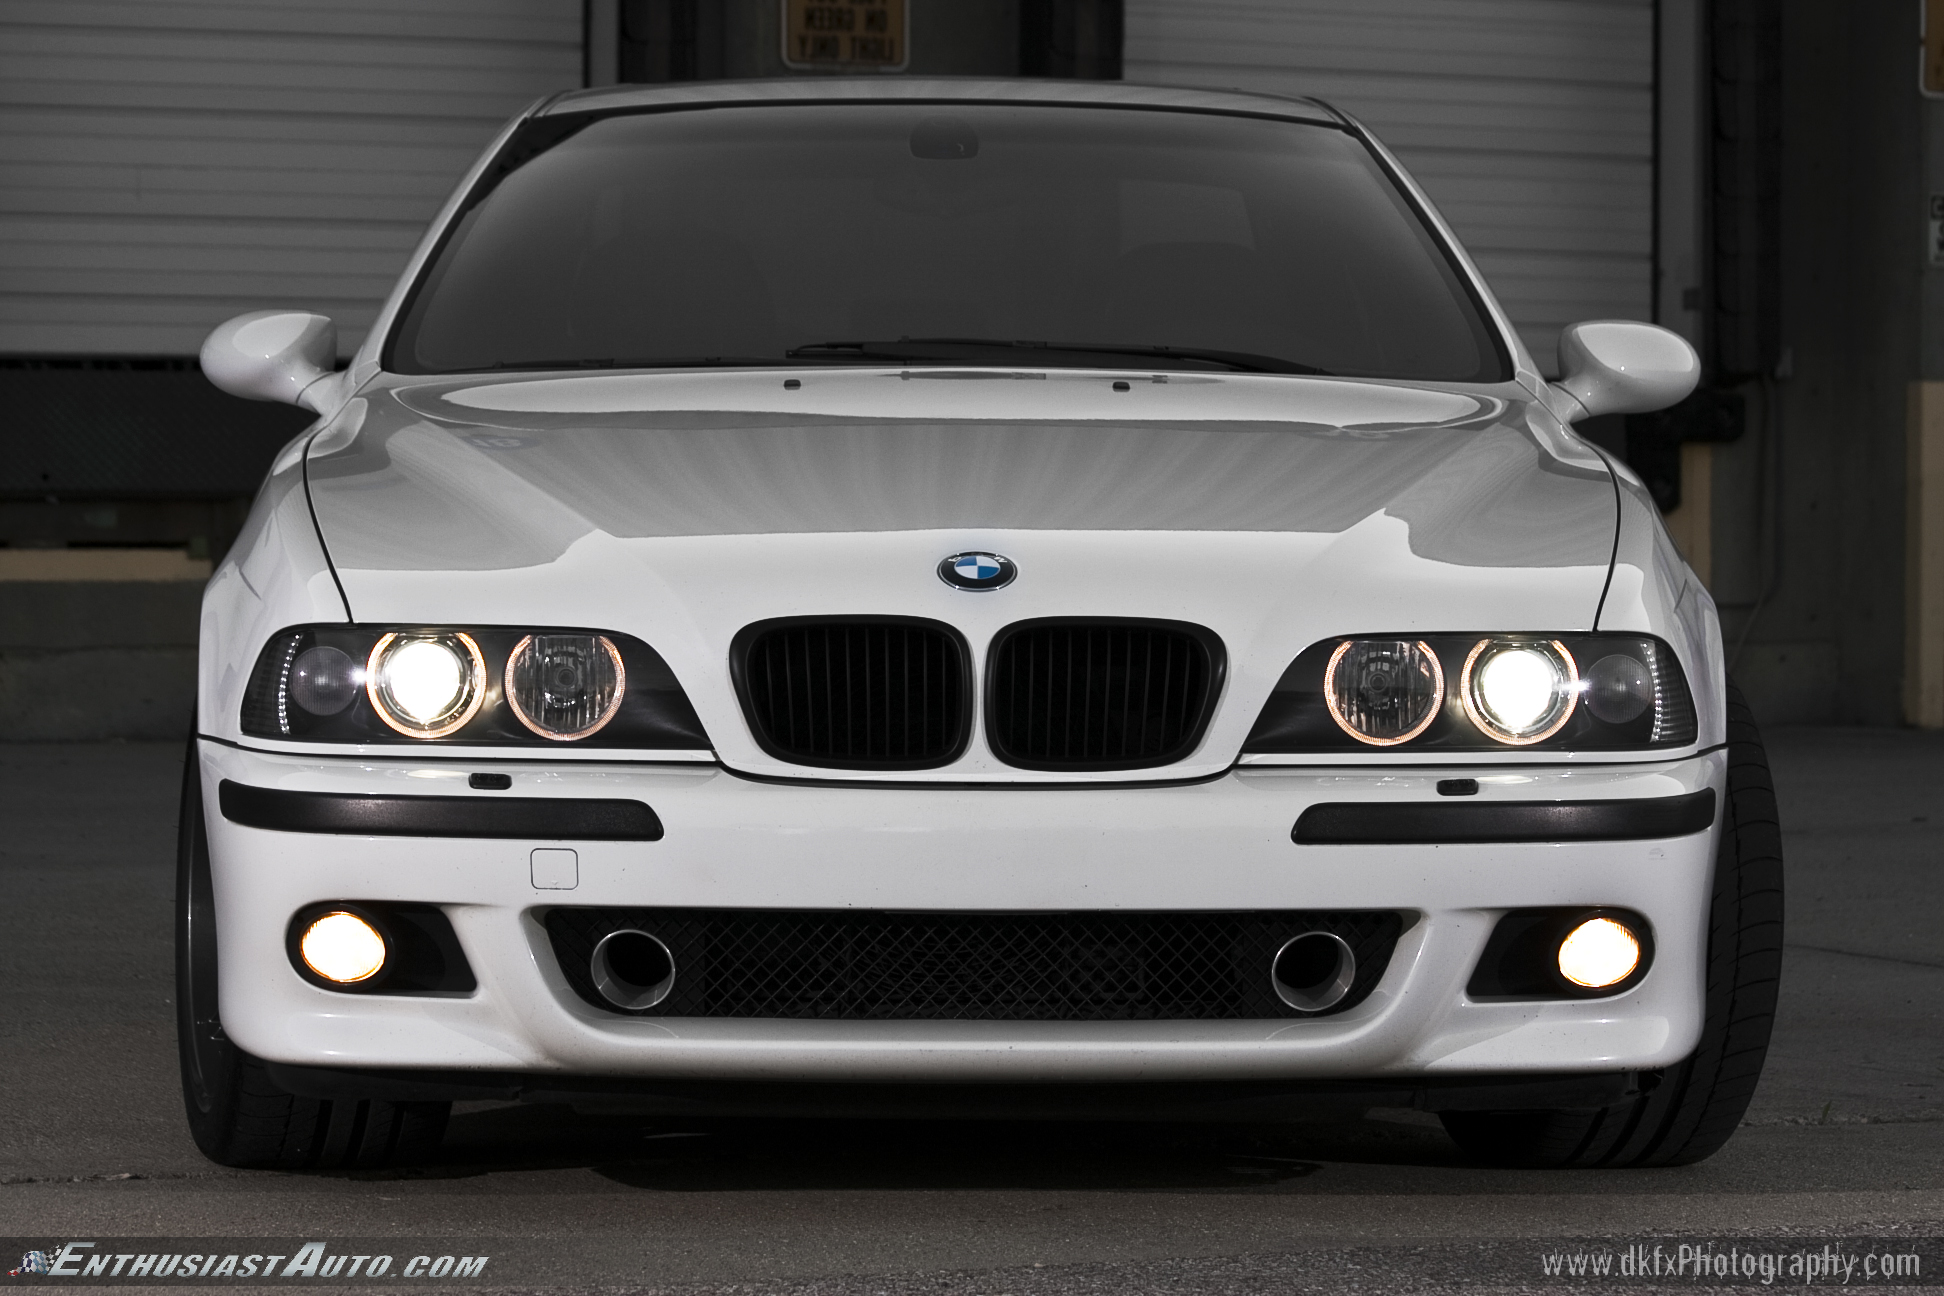 Bmw 730 1998 Review Amazing Pictures And Images Look